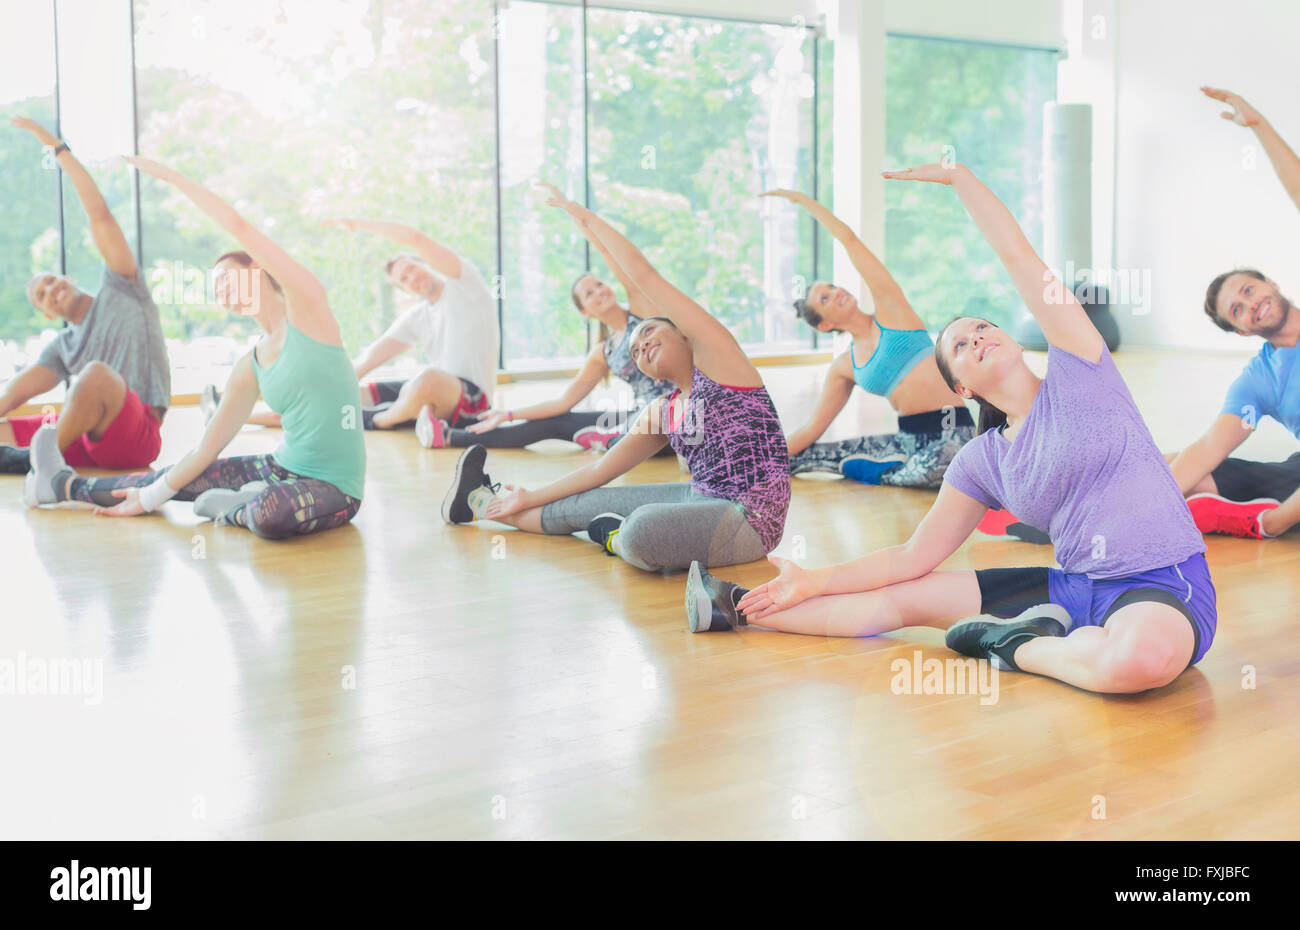 Classe d'exercice stretching arms Photo Stock